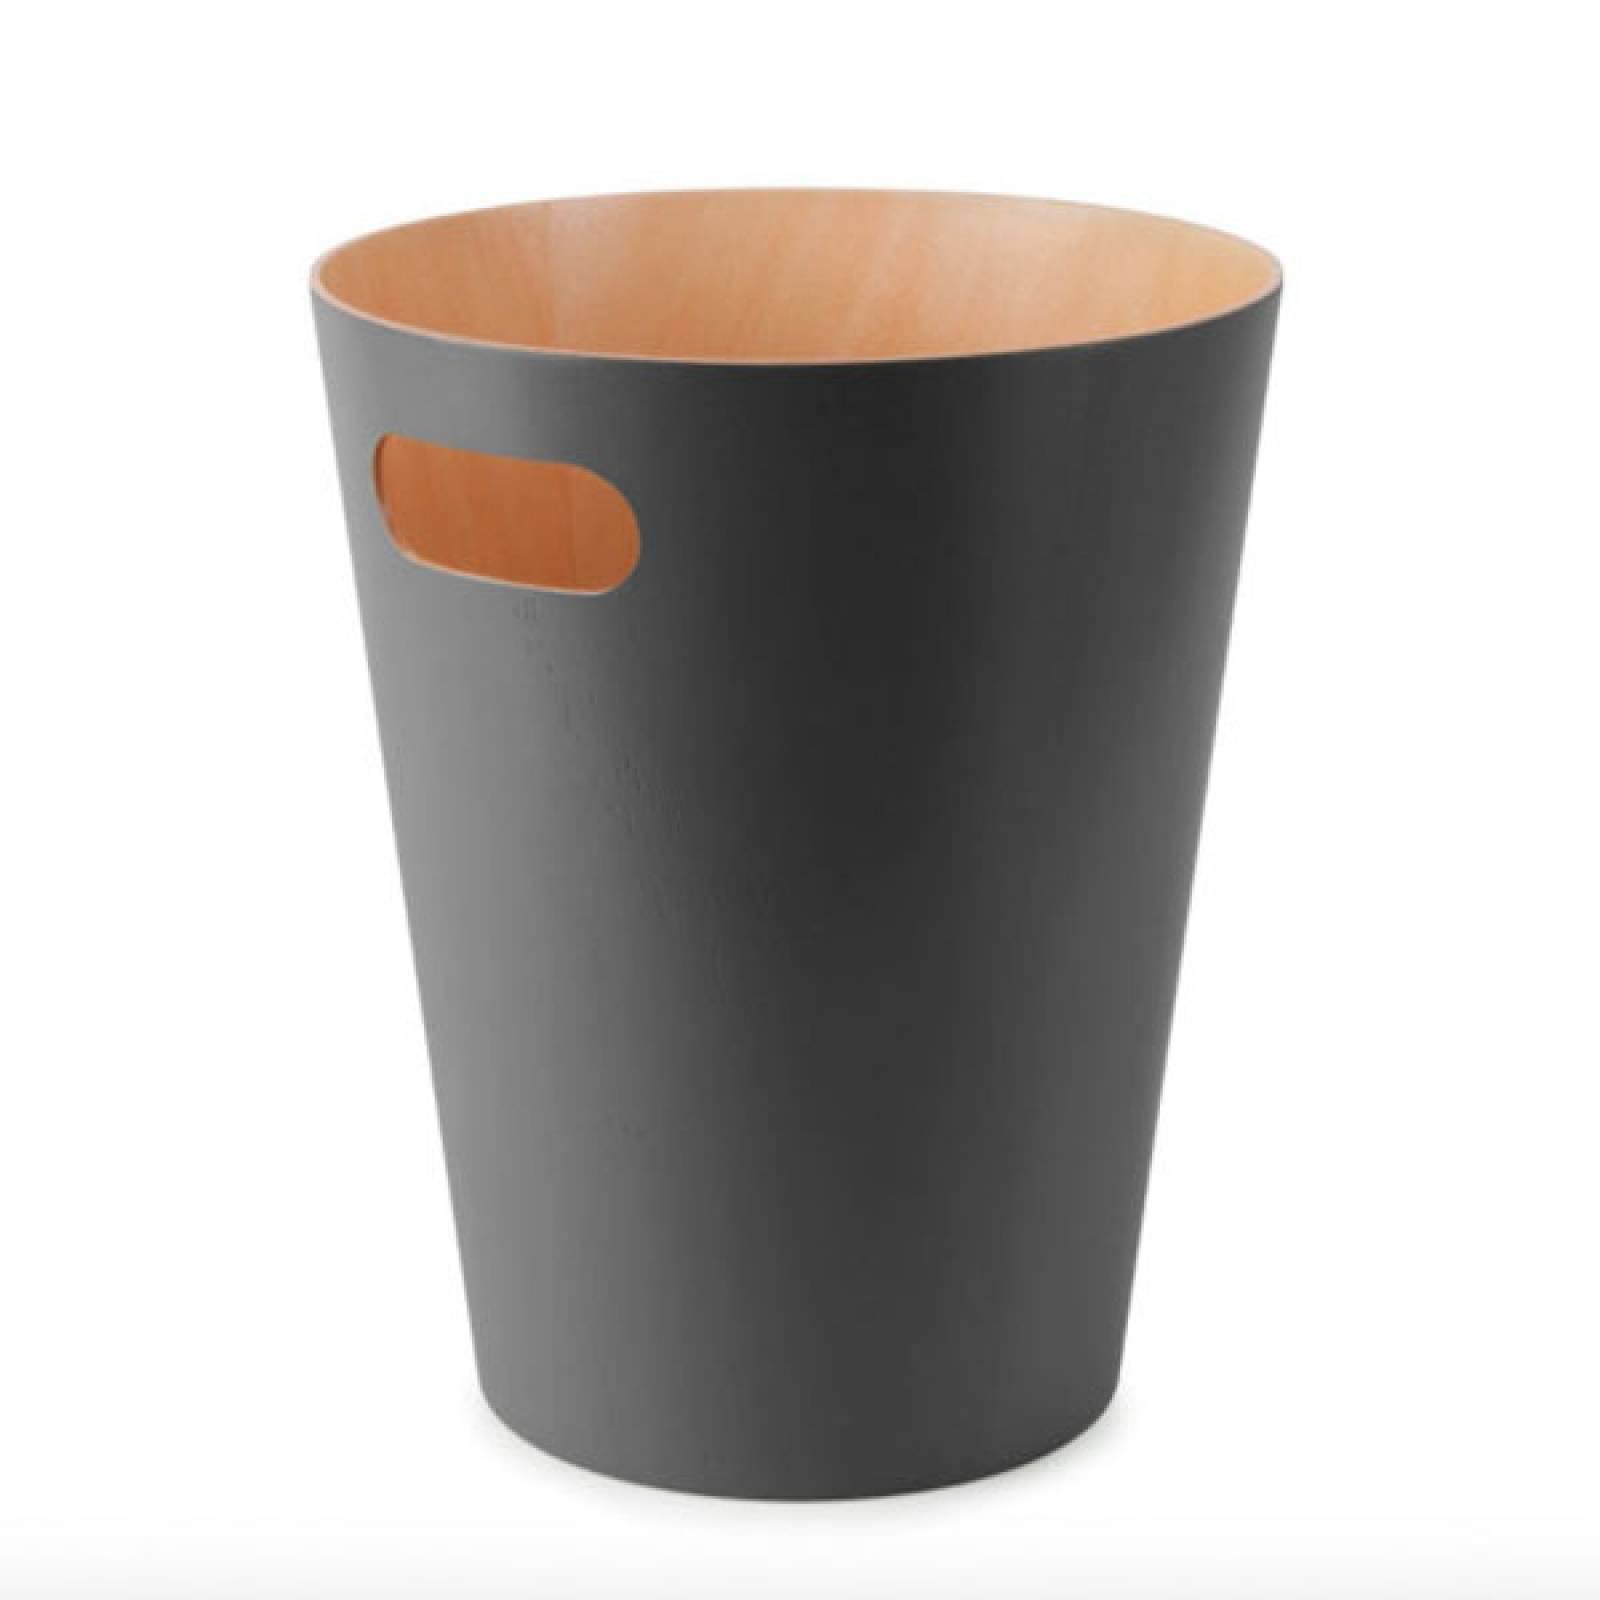 Woodrow Waste bin Charcoal Grey